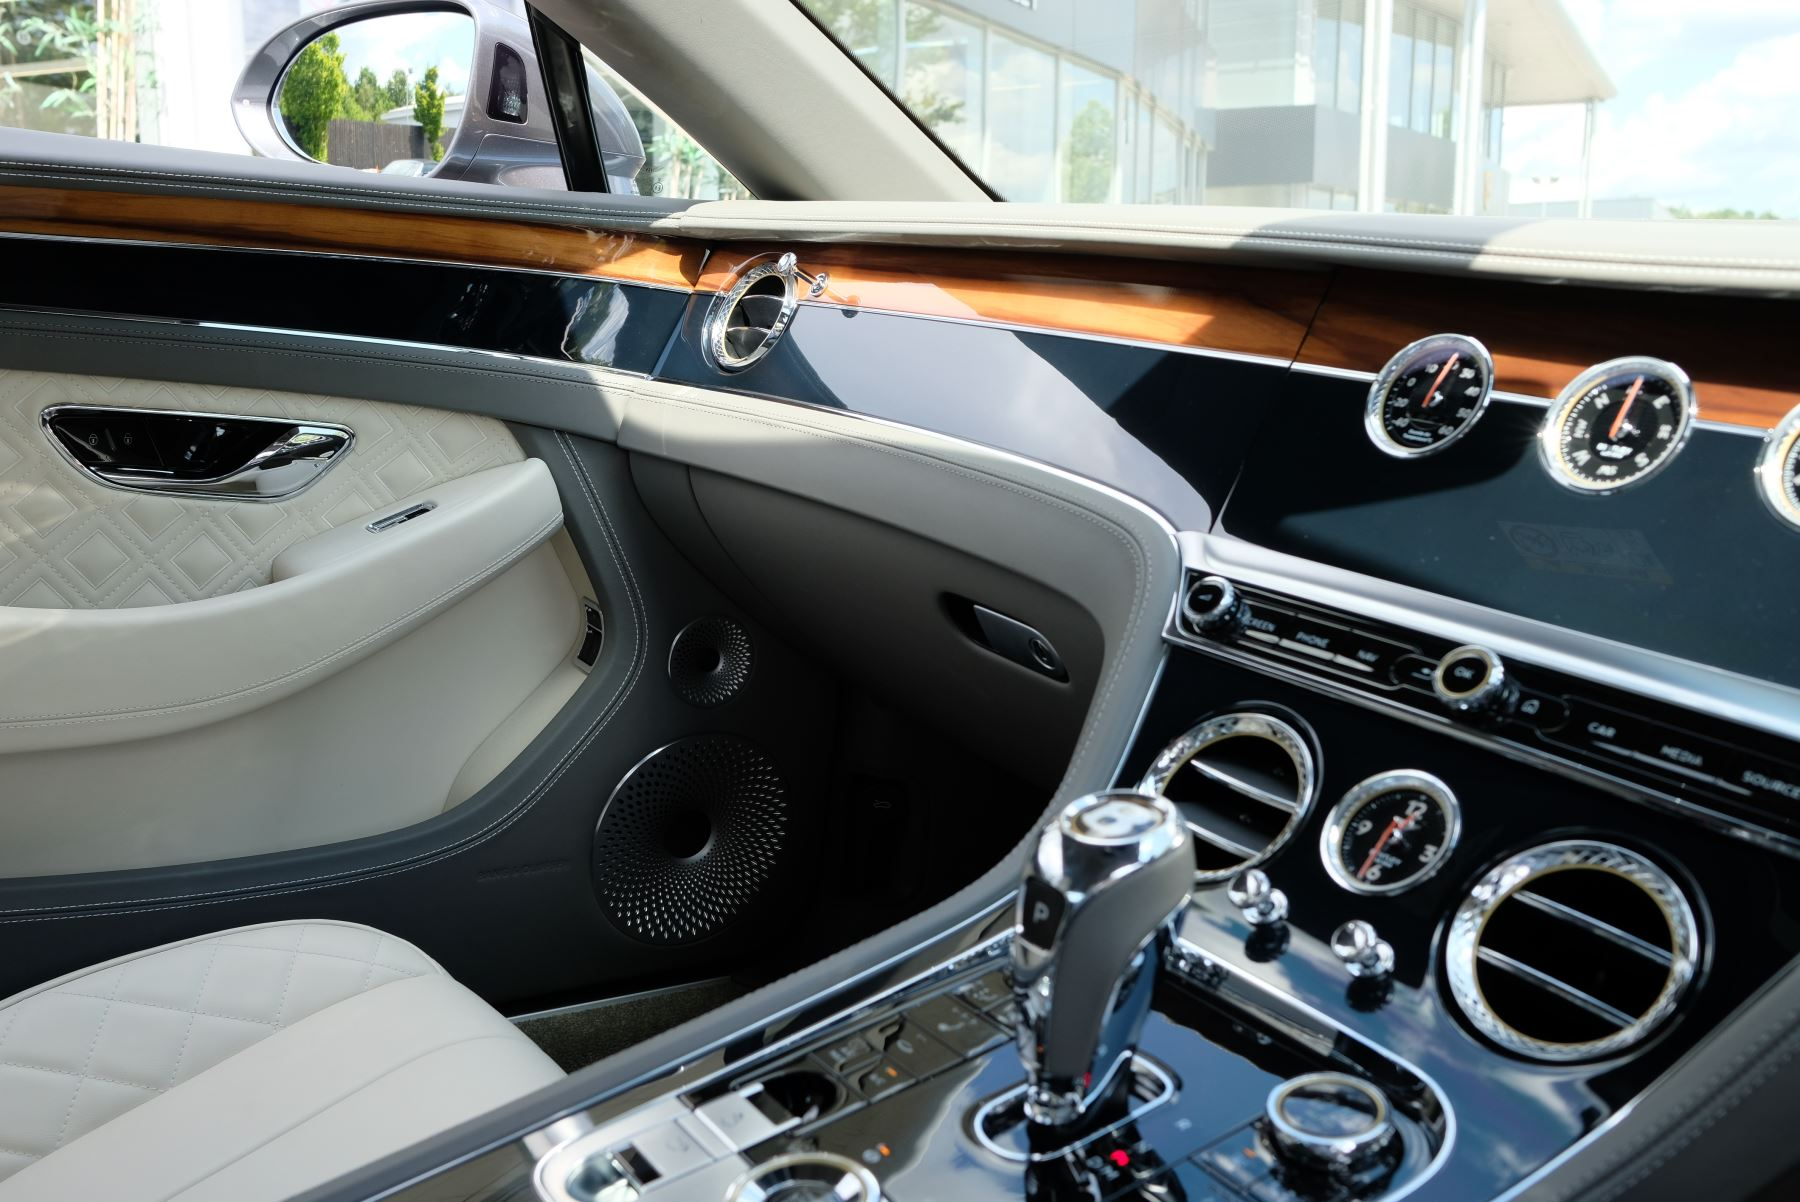 Bentley Continental GT 6.0 W12 2dr image 36